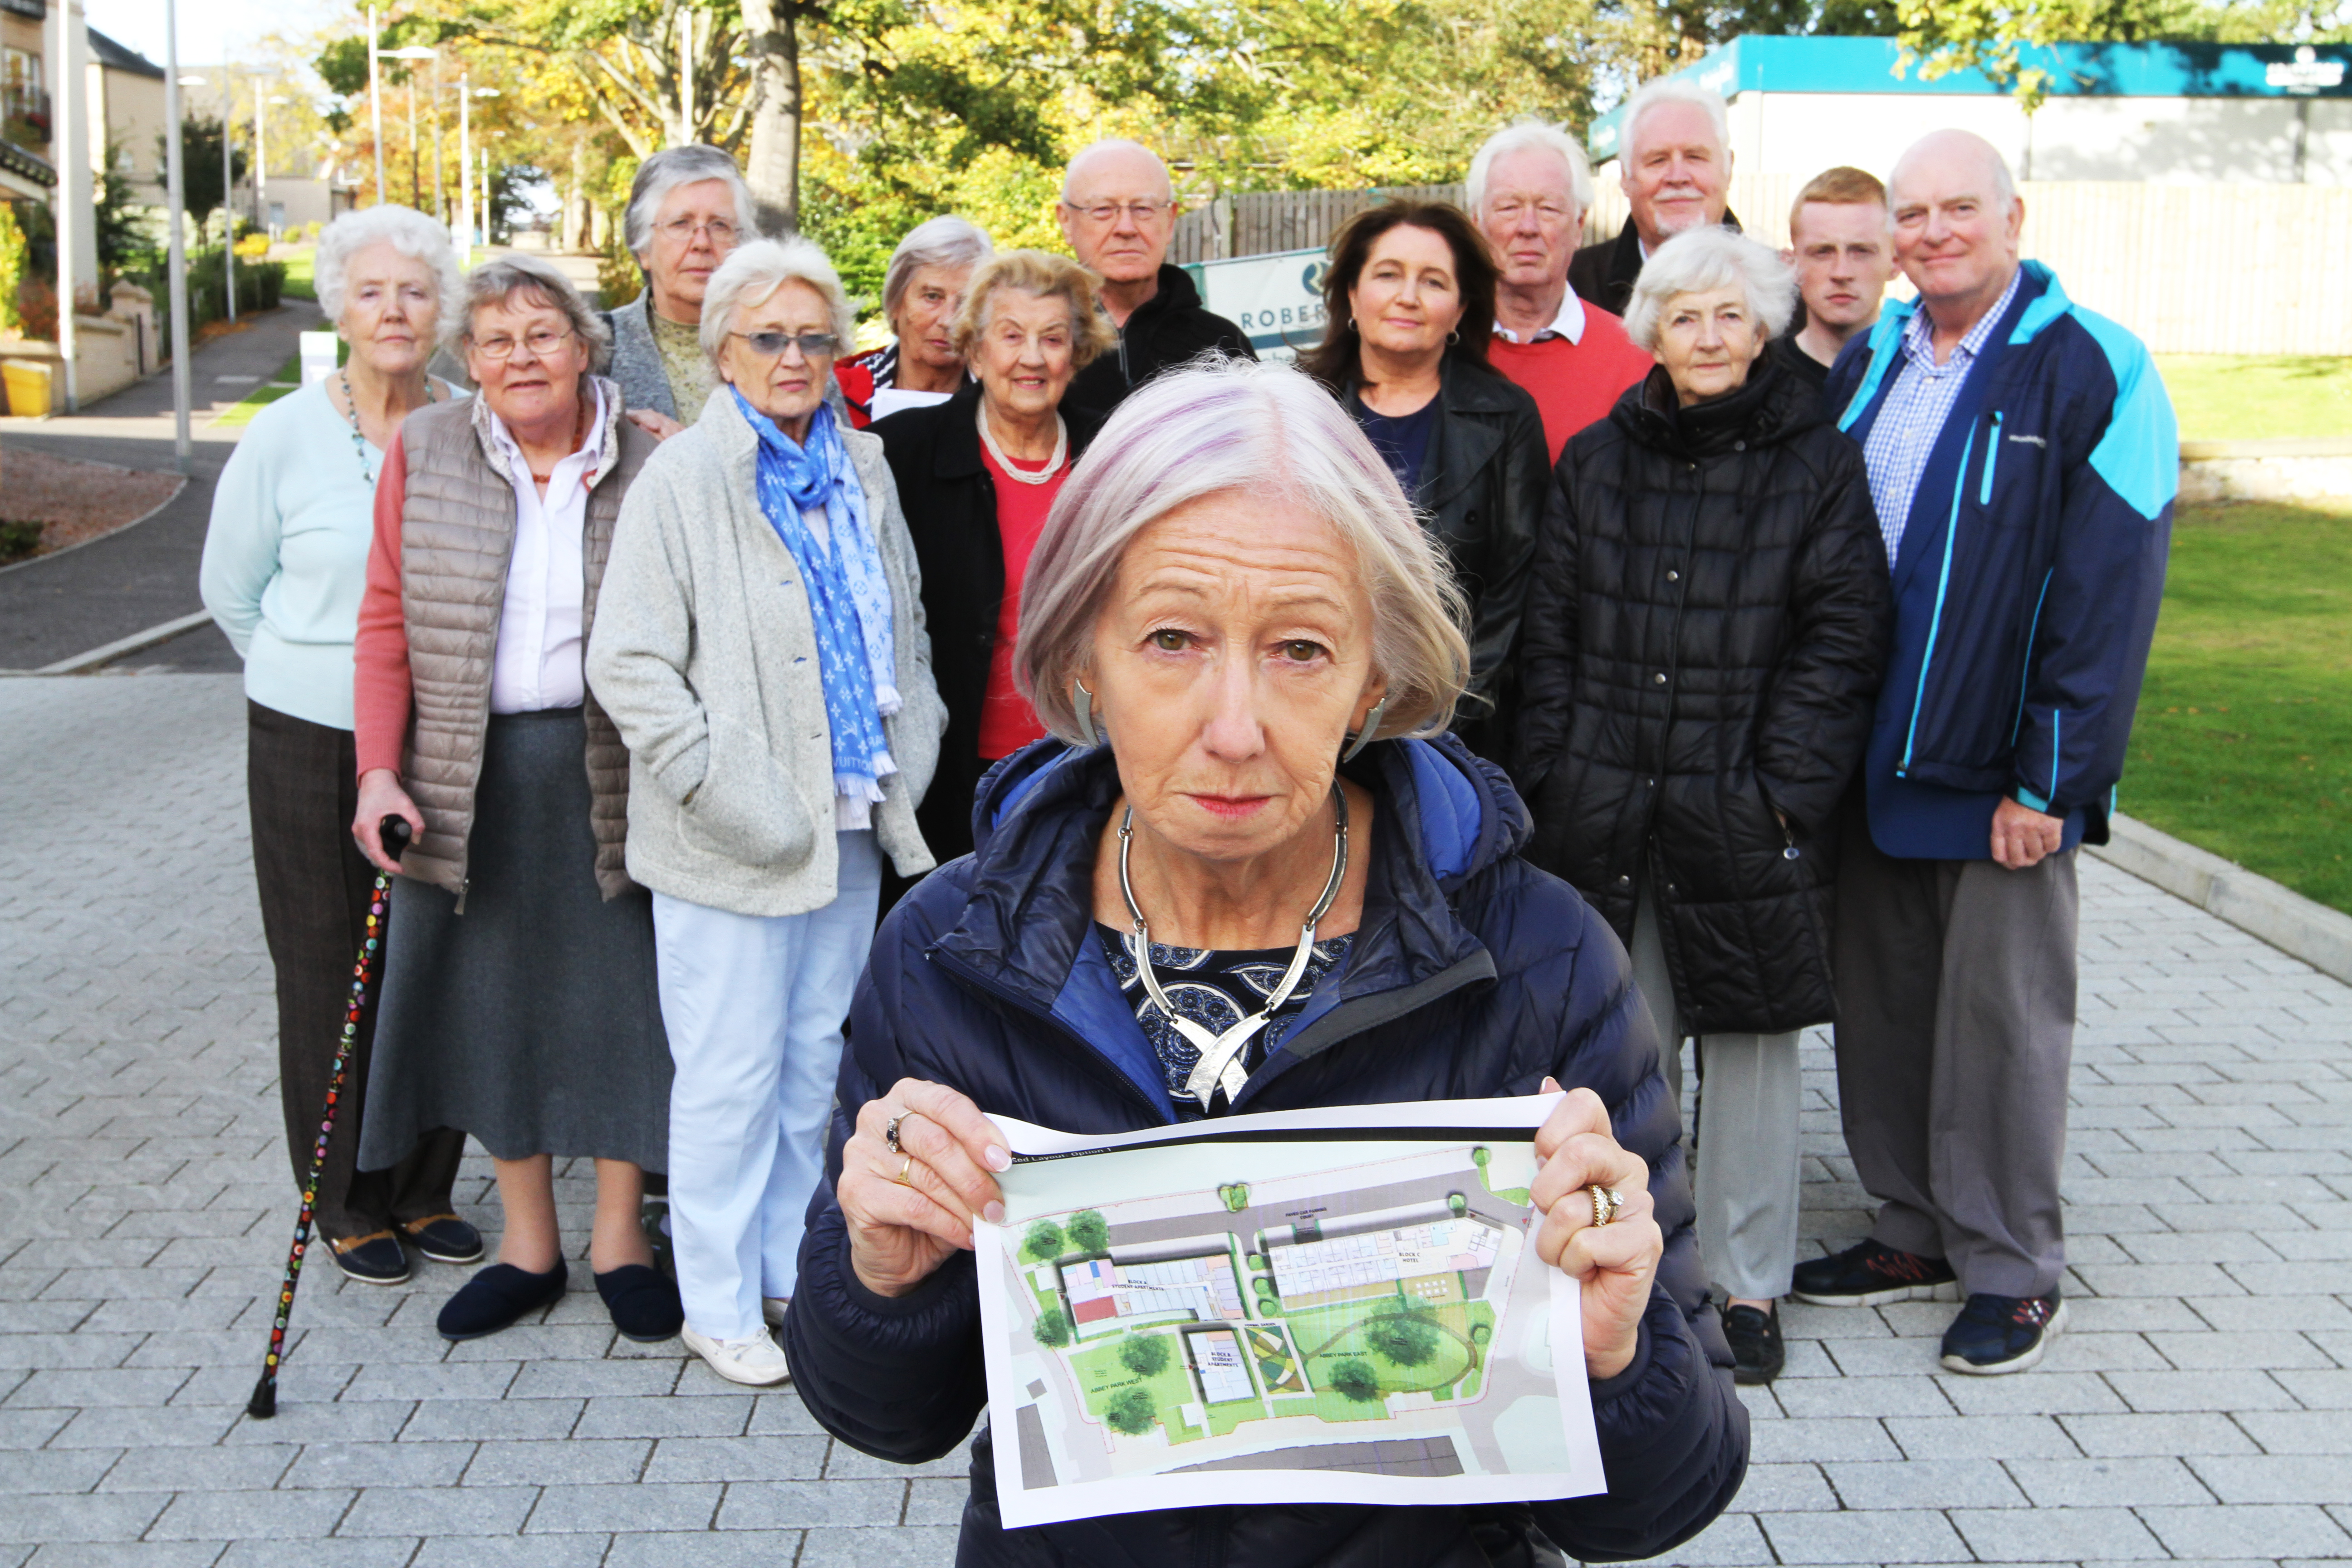 Residents, including Dr Sandra Stewart (front) fought plans for a hotel and student accommodation in their quiet neighbourhood.